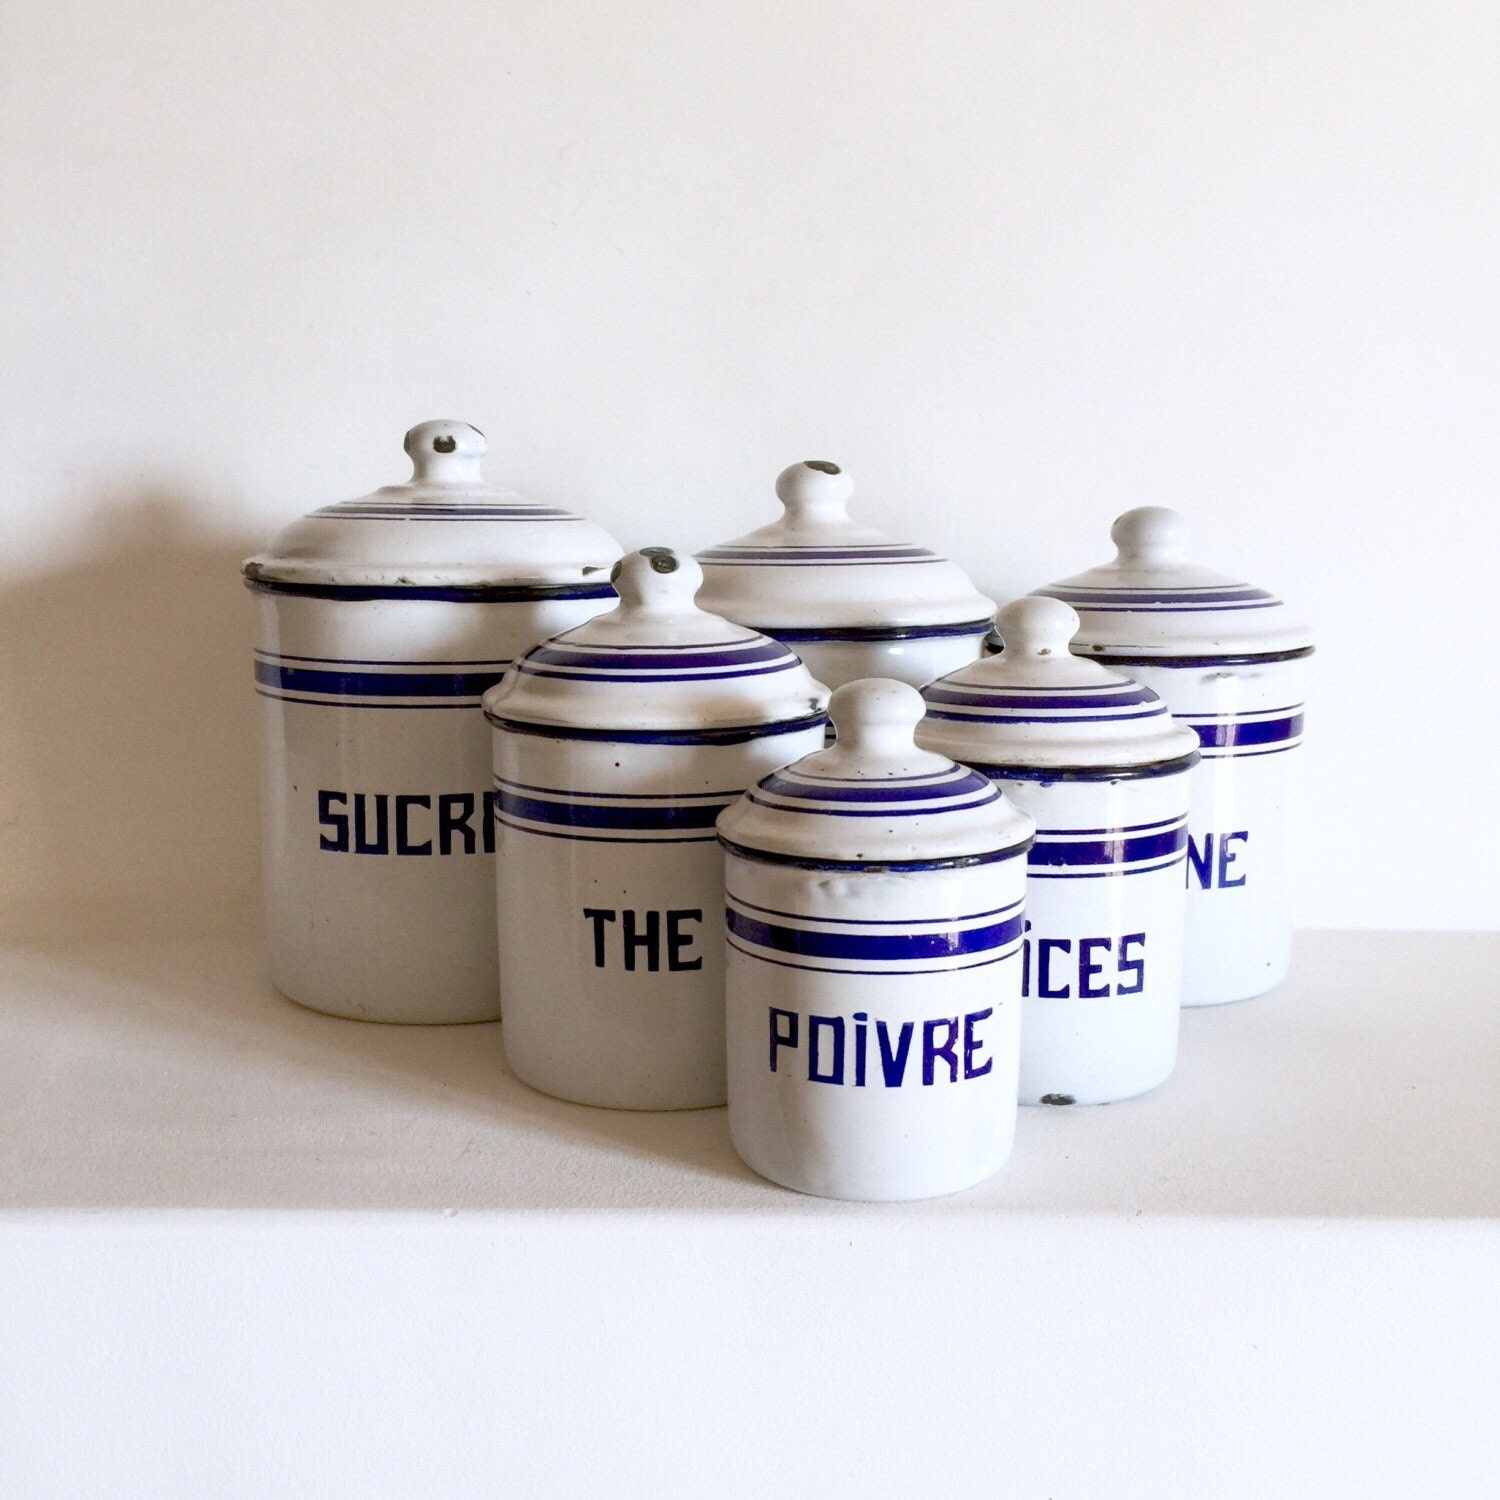 French Antique Enamel Canisters - French Kitchen Canisters ...